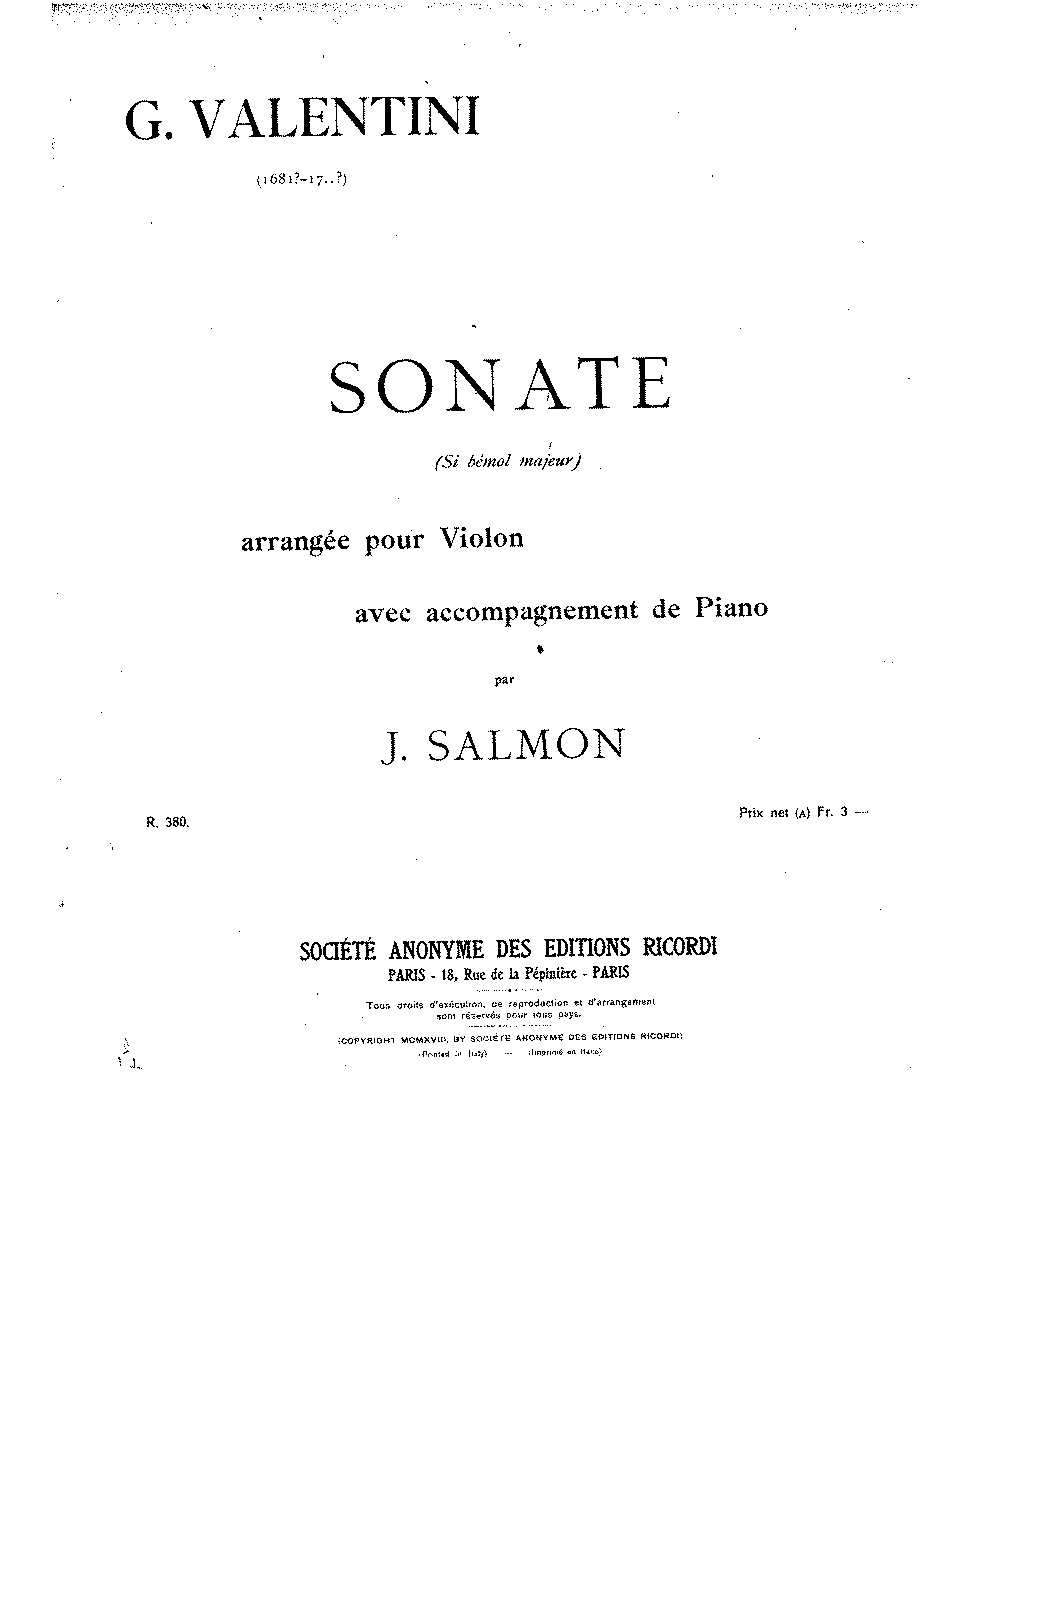 PMLP409834-Valentini - Sonata in Bb Major (Salmon) for Violin and Piano score.pdf